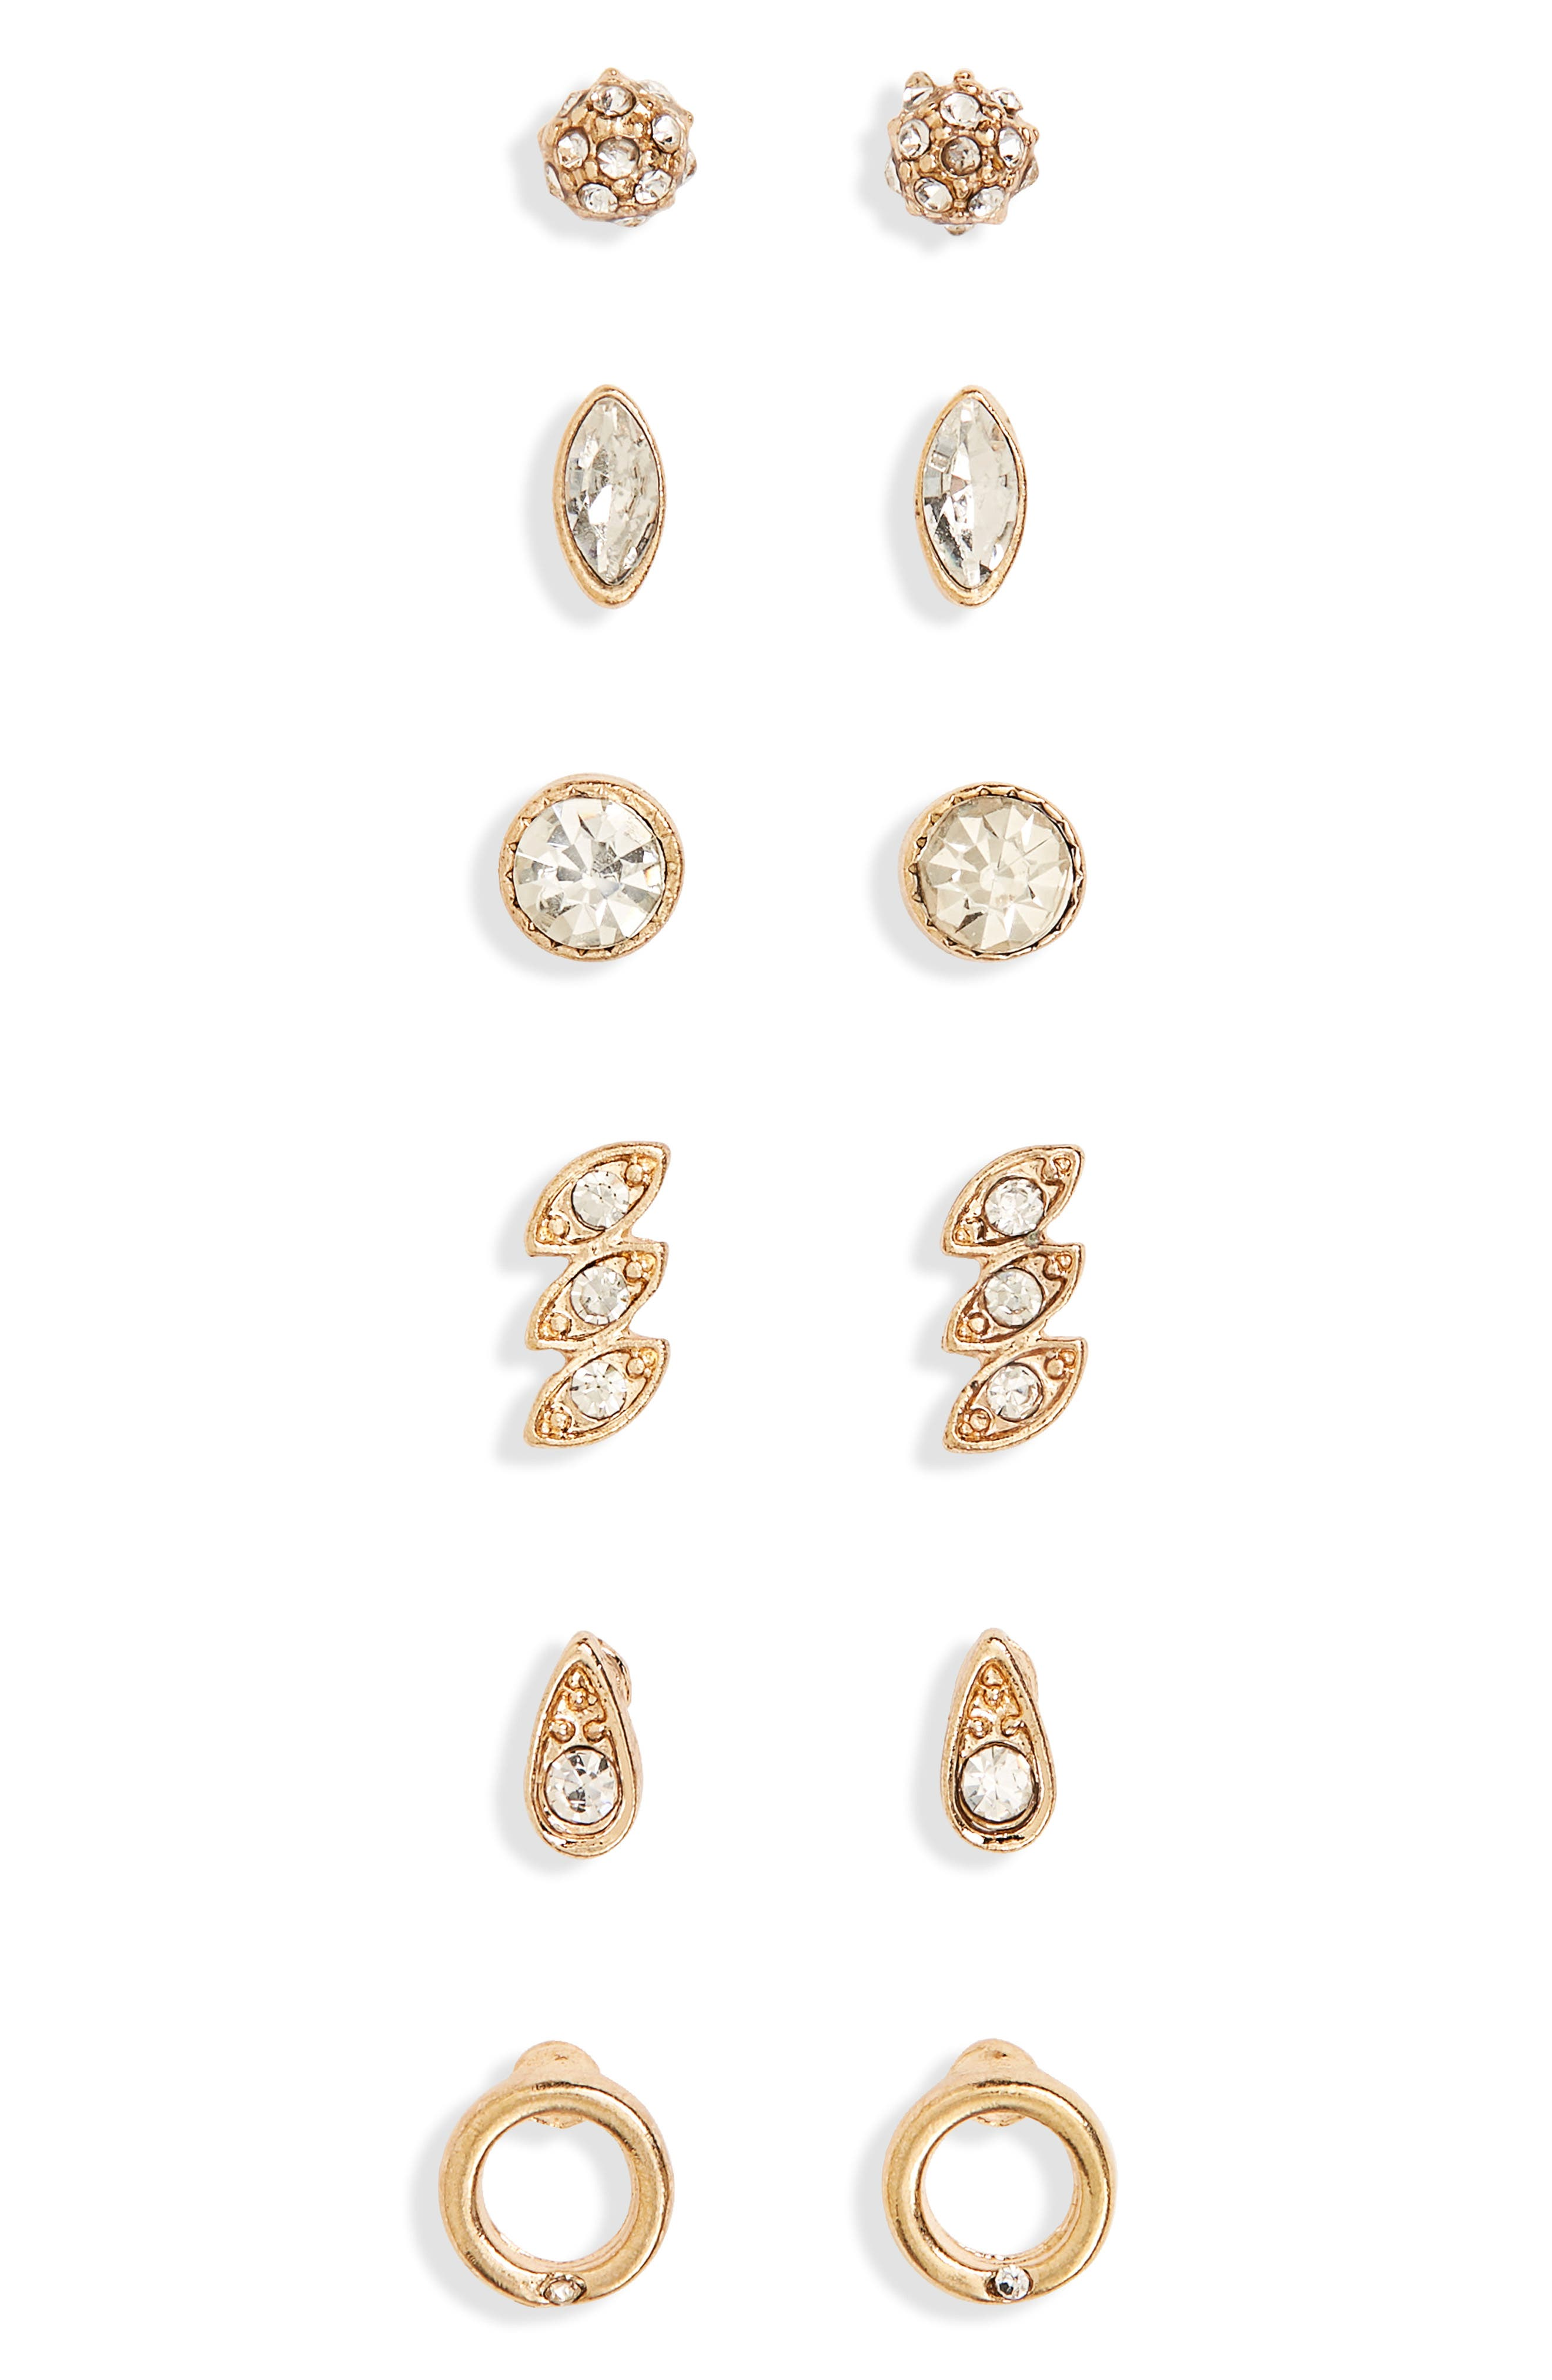 6-Pack Crystal Stud Earrings,                             Main thumbnail 1, color,                             Gold/ Crystal